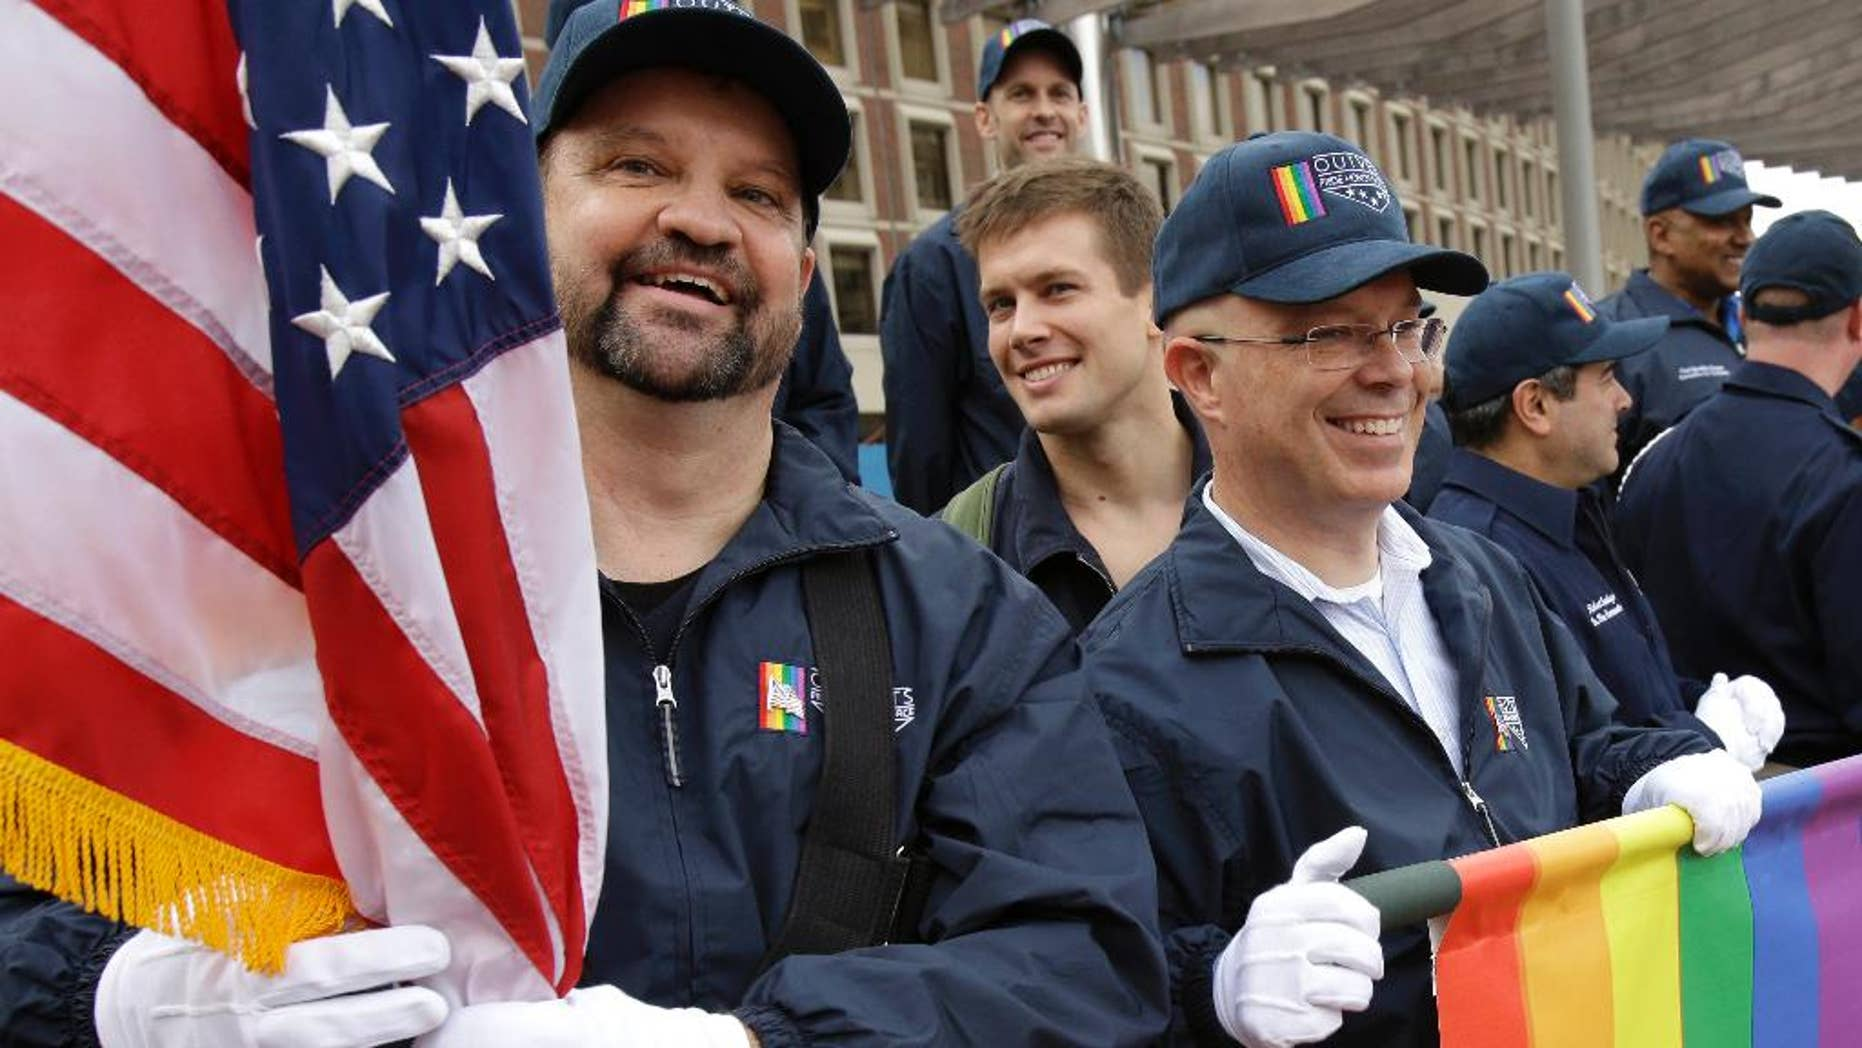 FILE - In this Nov. 11, 2014 file photo, retired U.S. Air Force Master Sgt. Eric Bullen, of Westborough, Mass., left, holds an American flag as U.S. Army veteran Ian Ryan, of Dennis, Mass., front right, rolls up an OutVets banner after marching with a group representing LGBT military veterans in a Veterans Day parade in Boston. The organizers of Boston's annual St. Patrick's Day parade voted to allow the group of gay  veterans along with a second gay group, Boston Pride, to march in the parade scheduled to step off at 1 p.m., on Sunday, March 15, 2015. (AP Photo/Steven Senne, File)